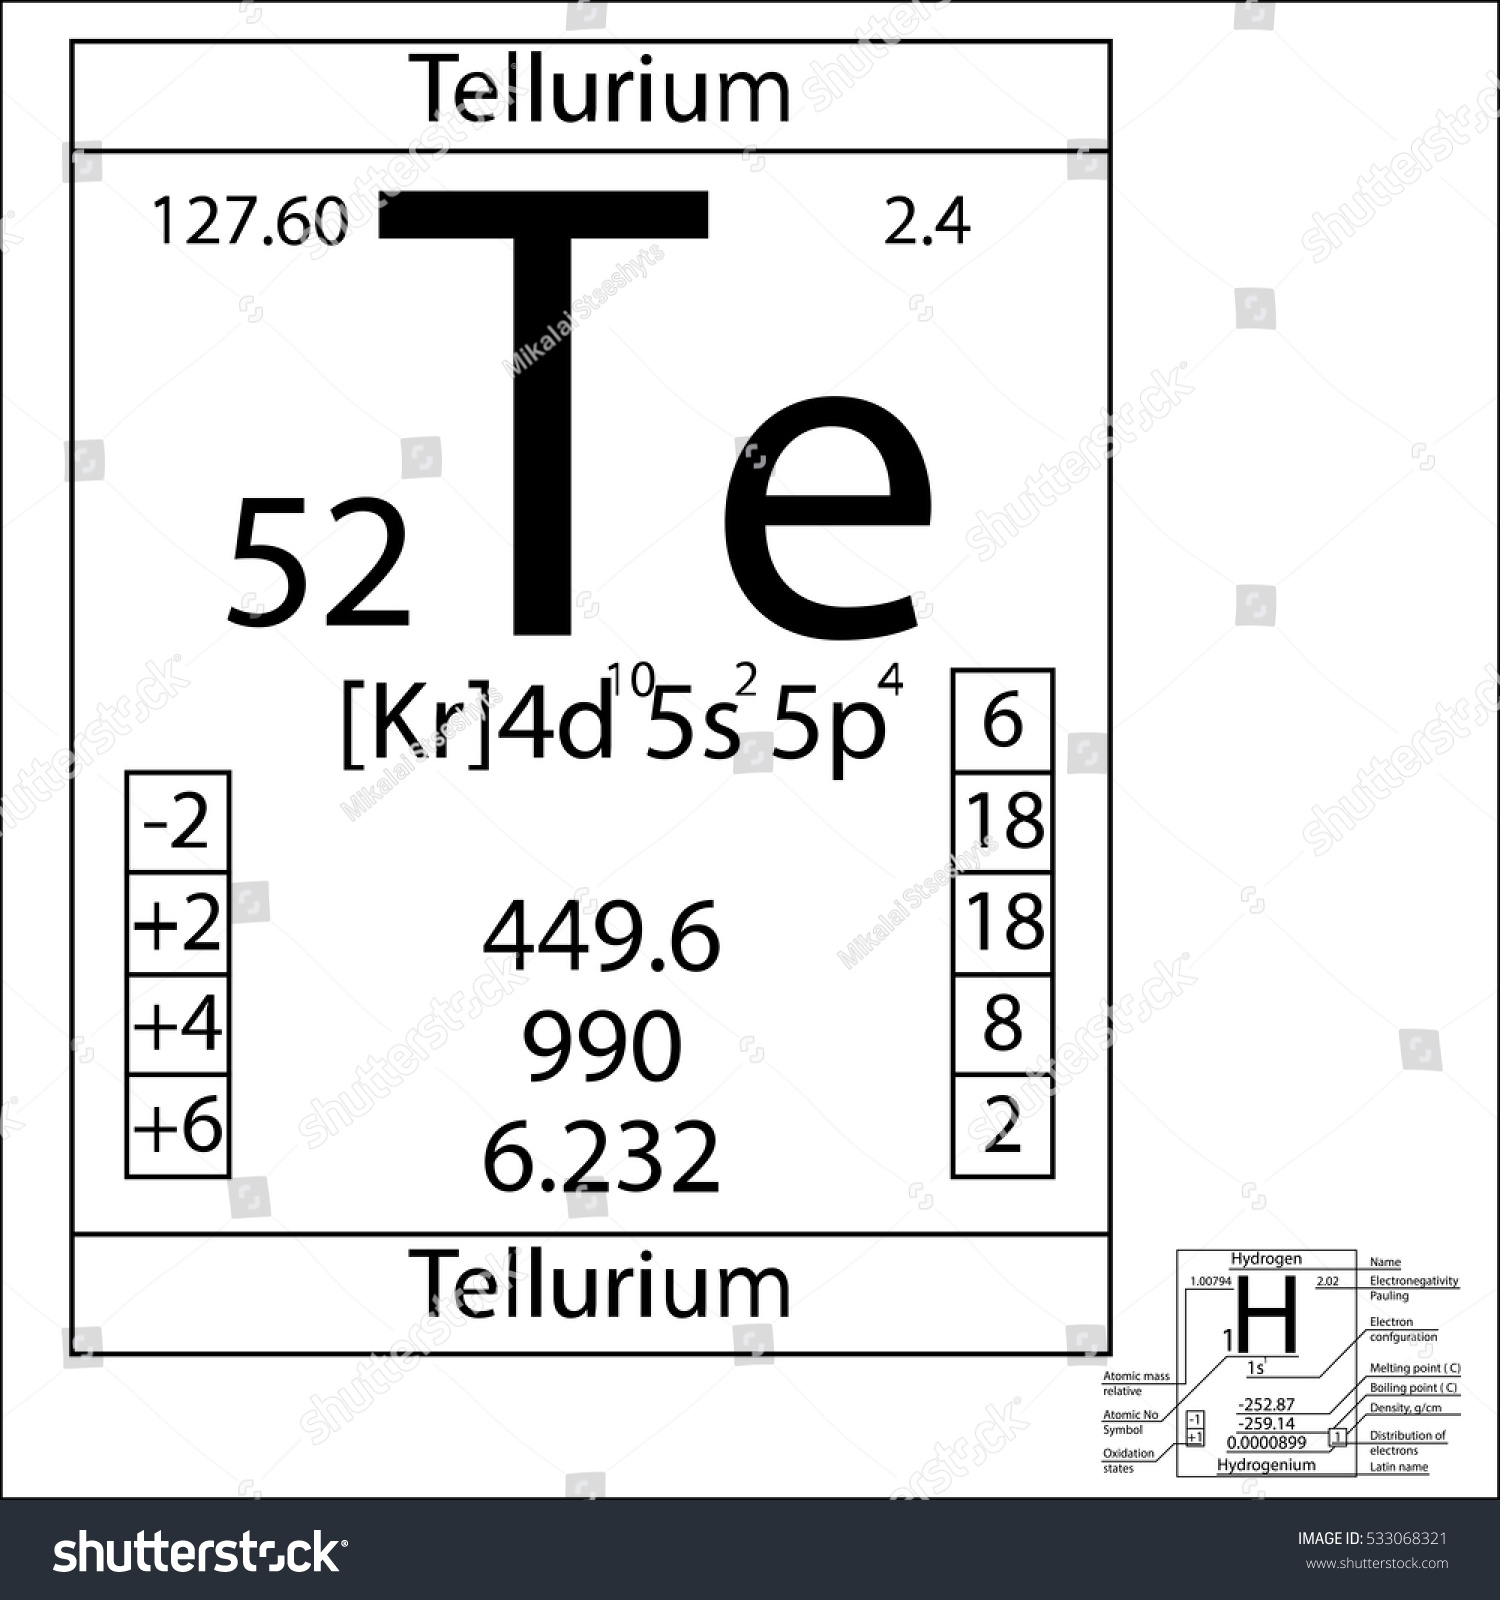 Tellurium on the periodic table images periodic table images tellurium on periodic table gallery periodic table images periodic table element tellurium basic properties stock vector gamestrikefo Choice Image